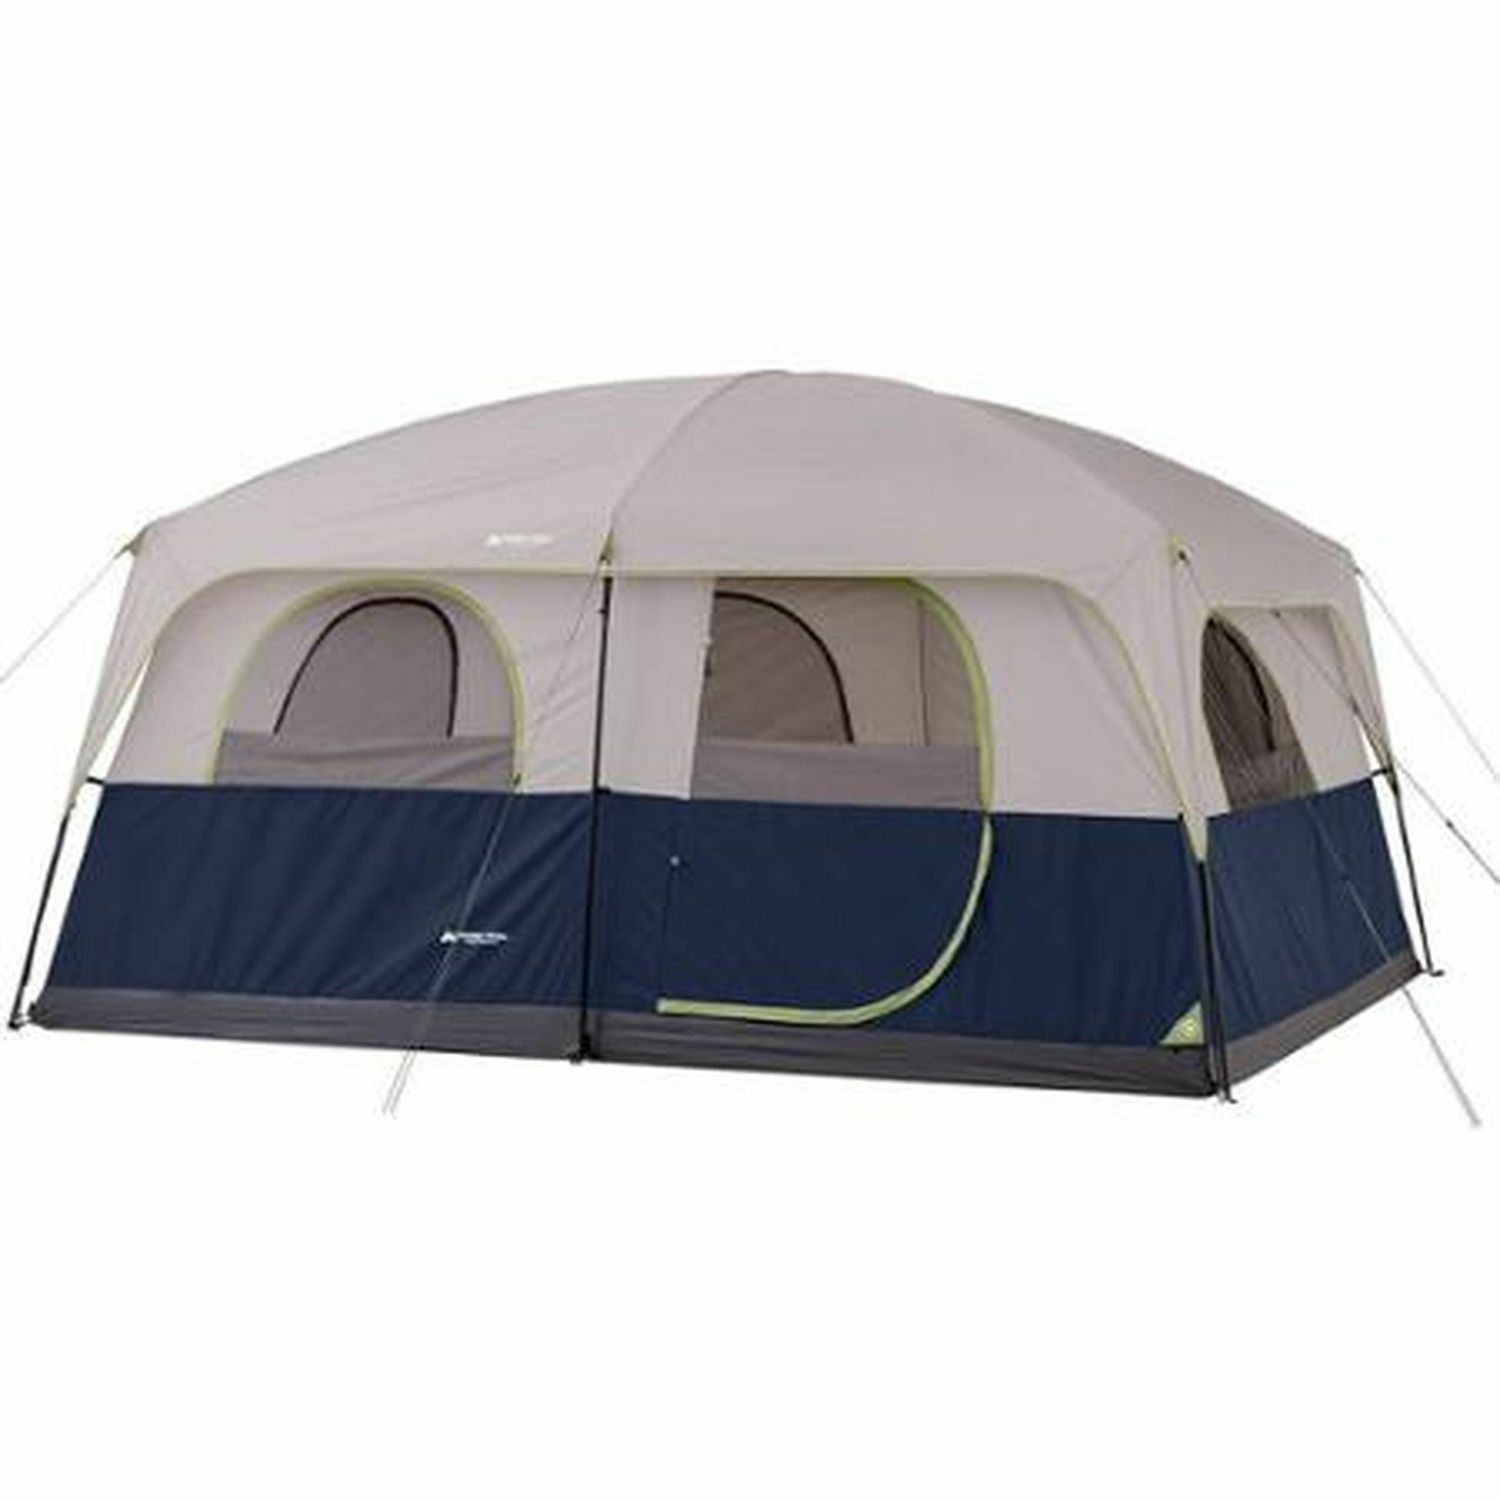 Ozark Trail 14 X 10 Family Cabin Tent Outdoor Camping  Shelter w Gear Loft Hike  lightning delivery